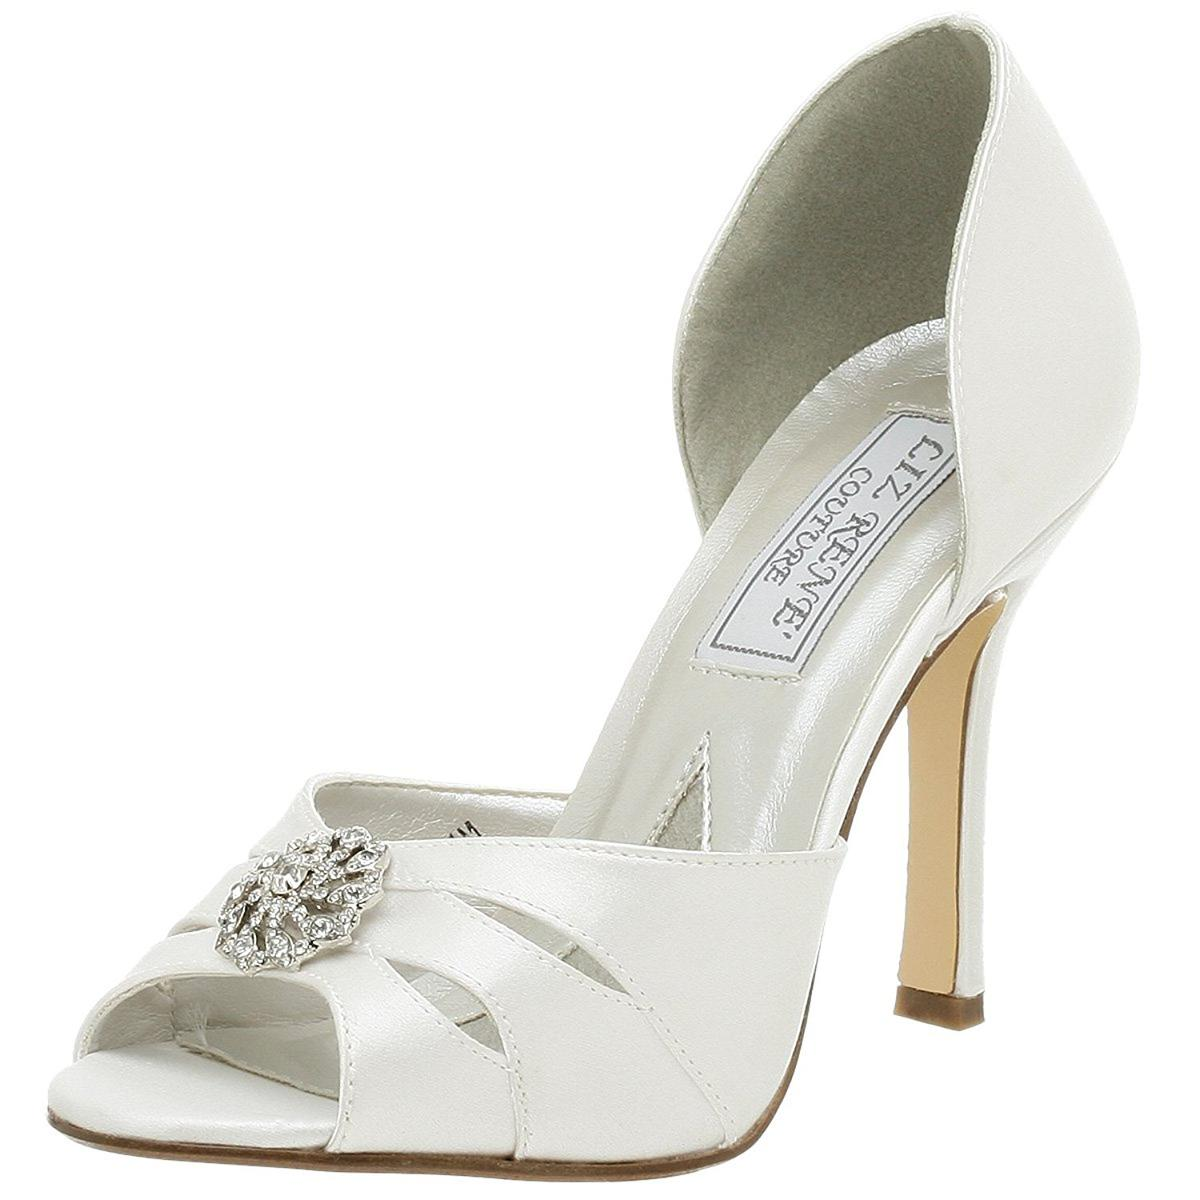 Liz Rene Couture Giselle Womens White Heels by Liz Rene Couture